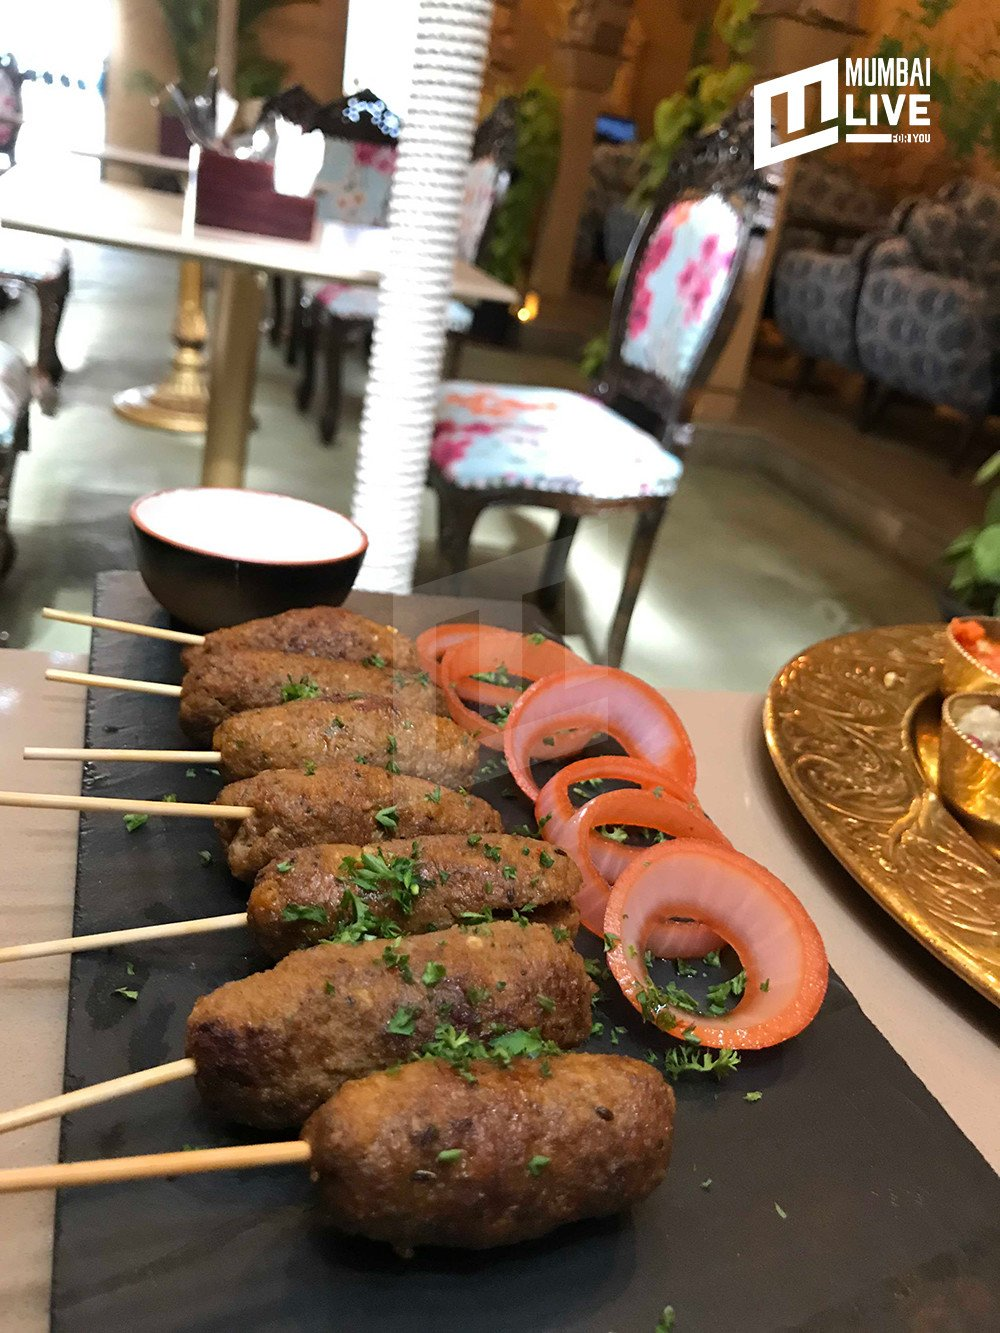 Mezze: Middle Eastern Cuisine And Culture Finds A New Home In Mumbai